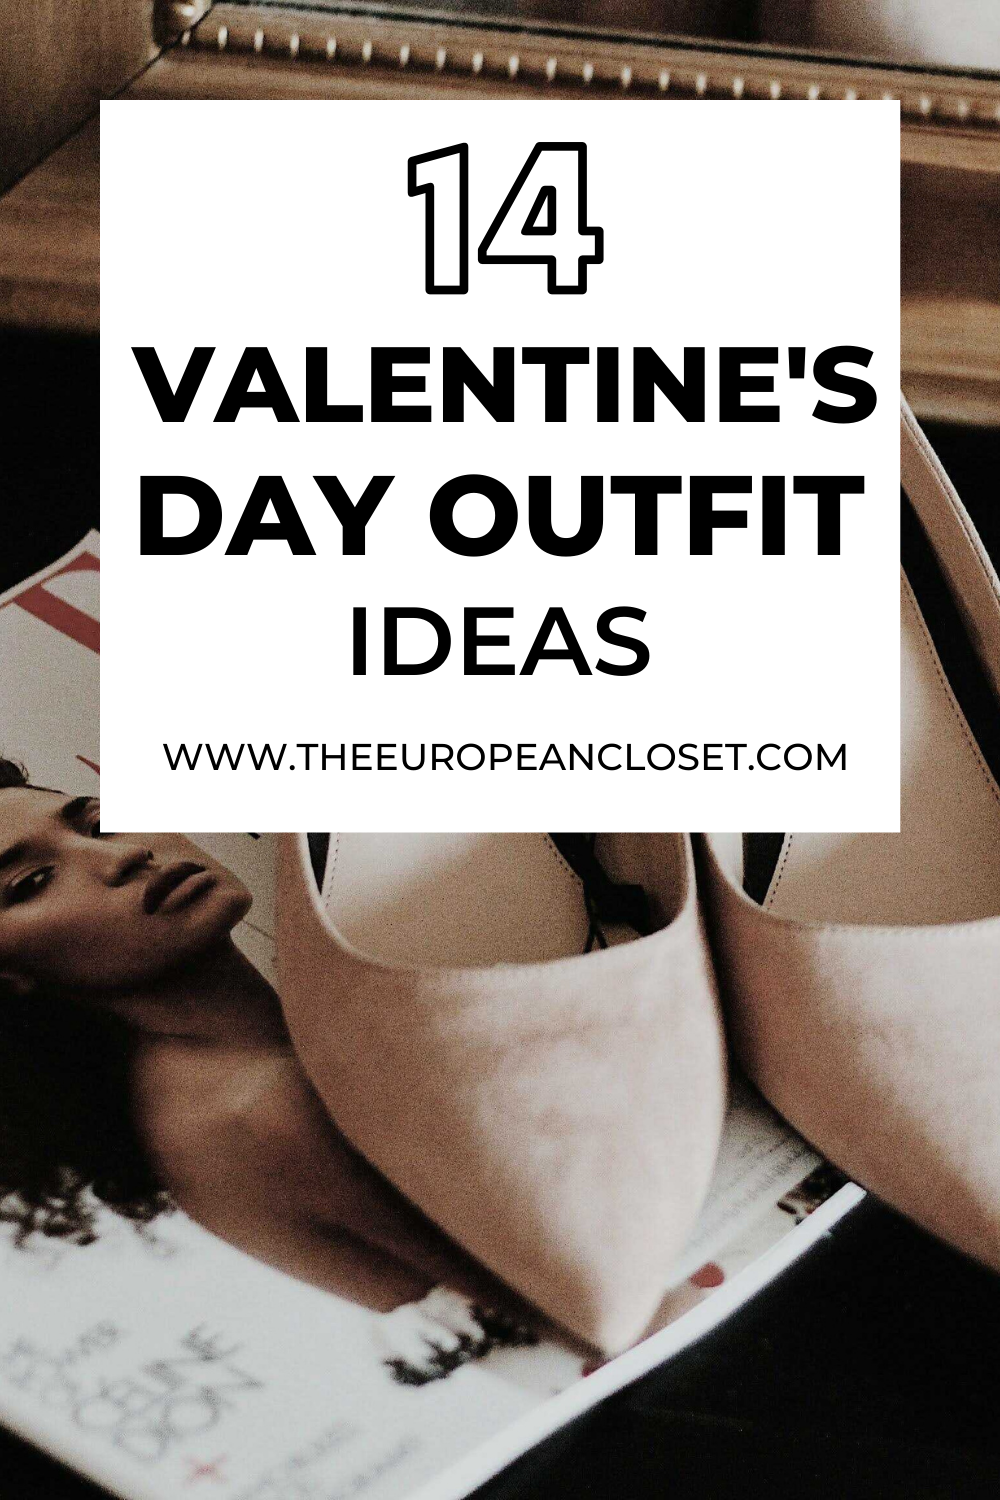 Today's post is all about valentine's day outfit ideas. I'll be sharing 14 looks (see the reference?) that can be worn anywhere you might go.